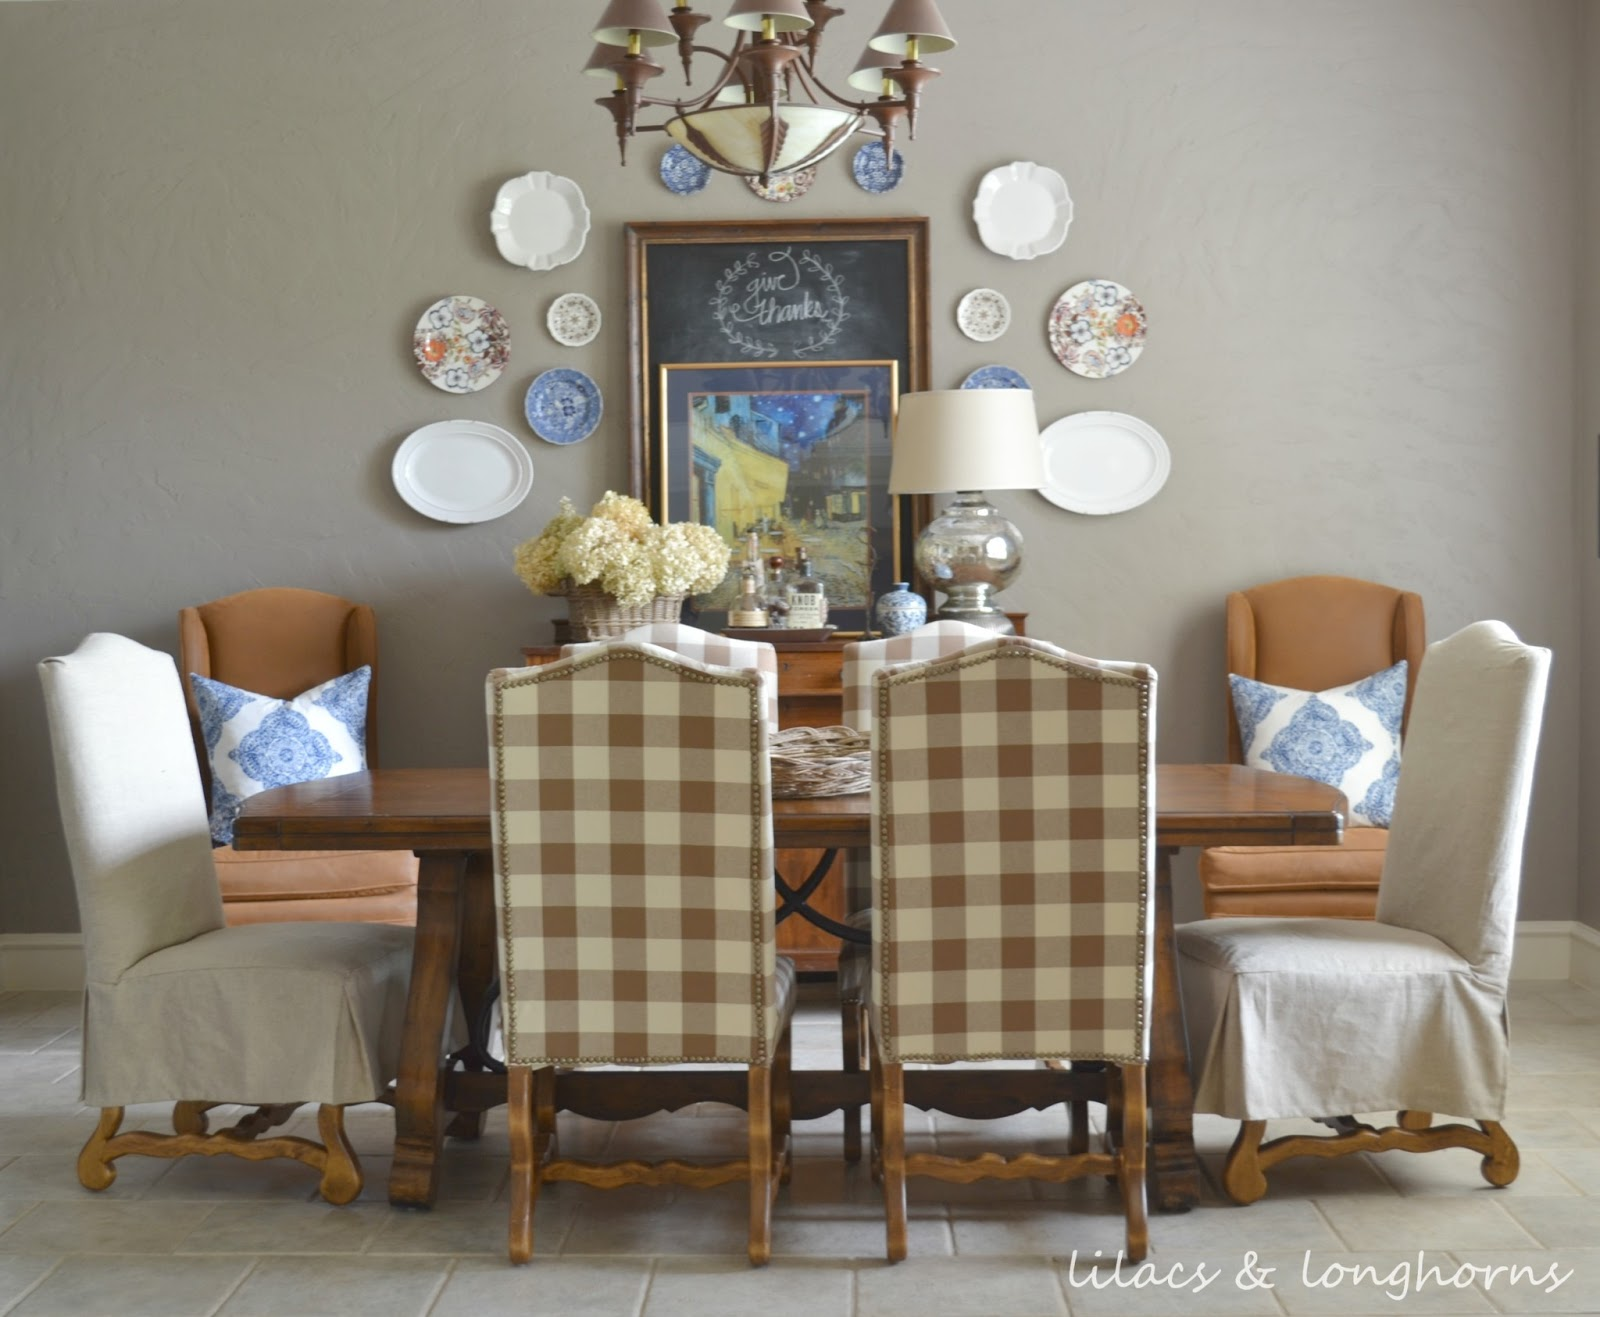 Tips for Re Upholstering Dining Chairs Lilacs and